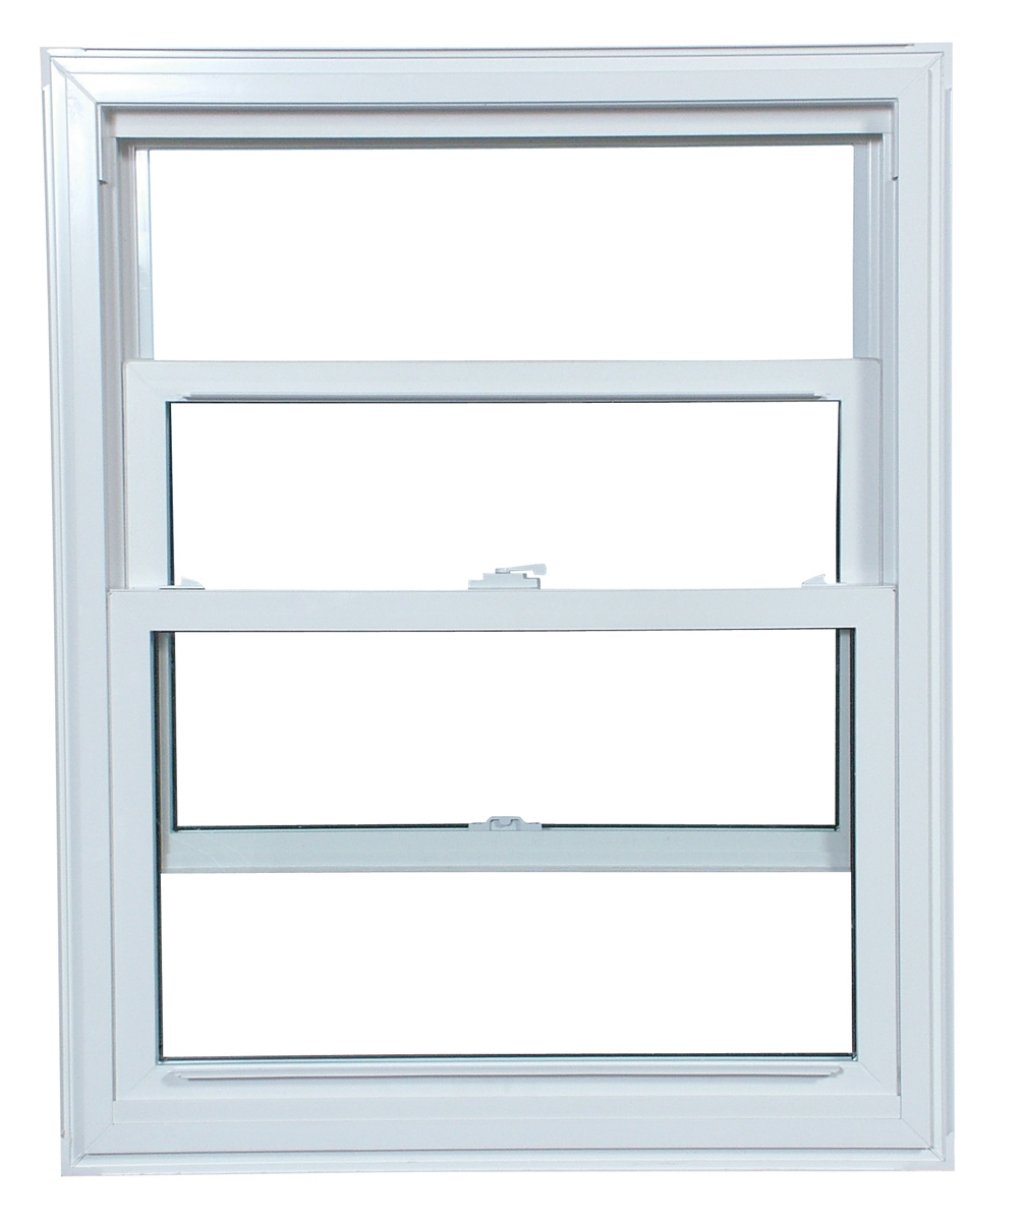 Grenoble Sliding And Guillotine Window Pvc Windows